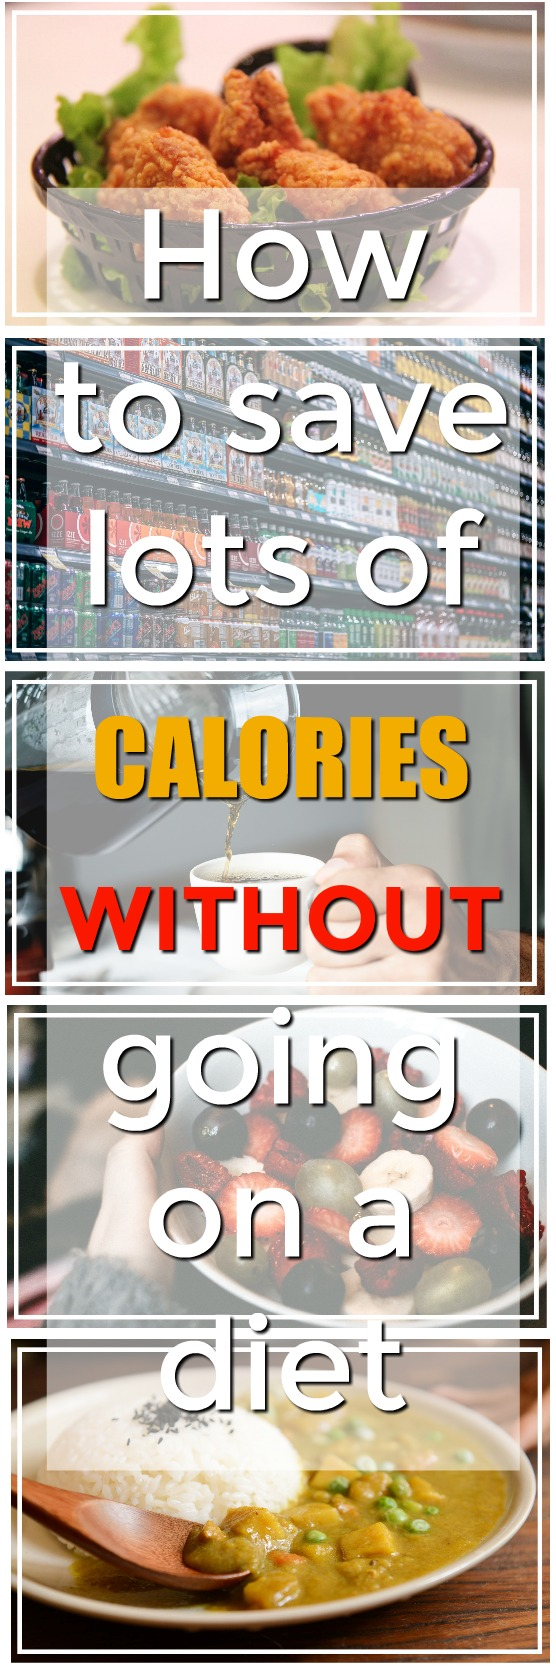 How to save calories everyday and loose weight without going on a diet